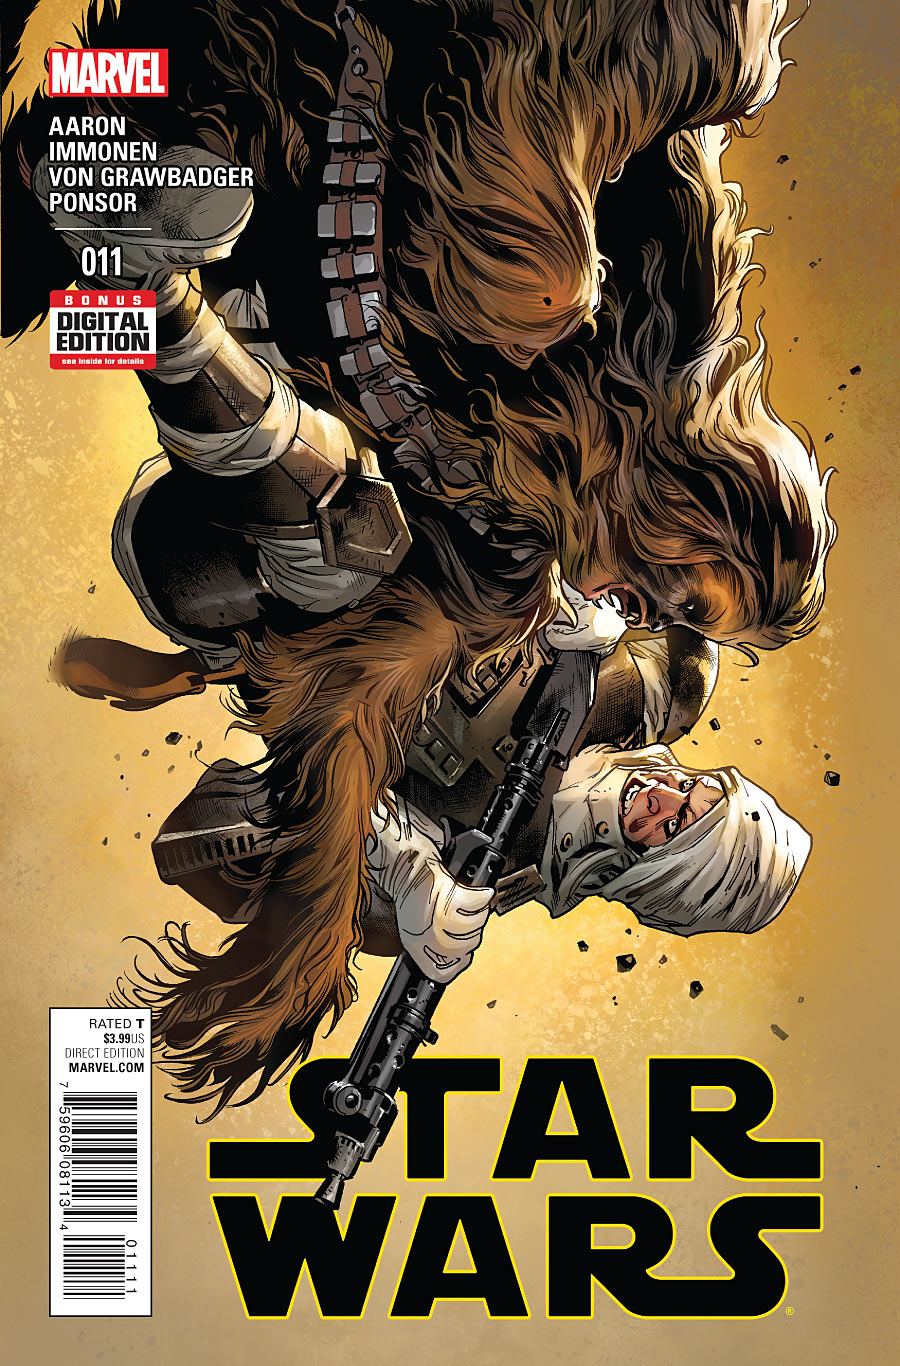 Star Wars 11 - Book II, Part IV: Showdown On the Smugglers' Moon